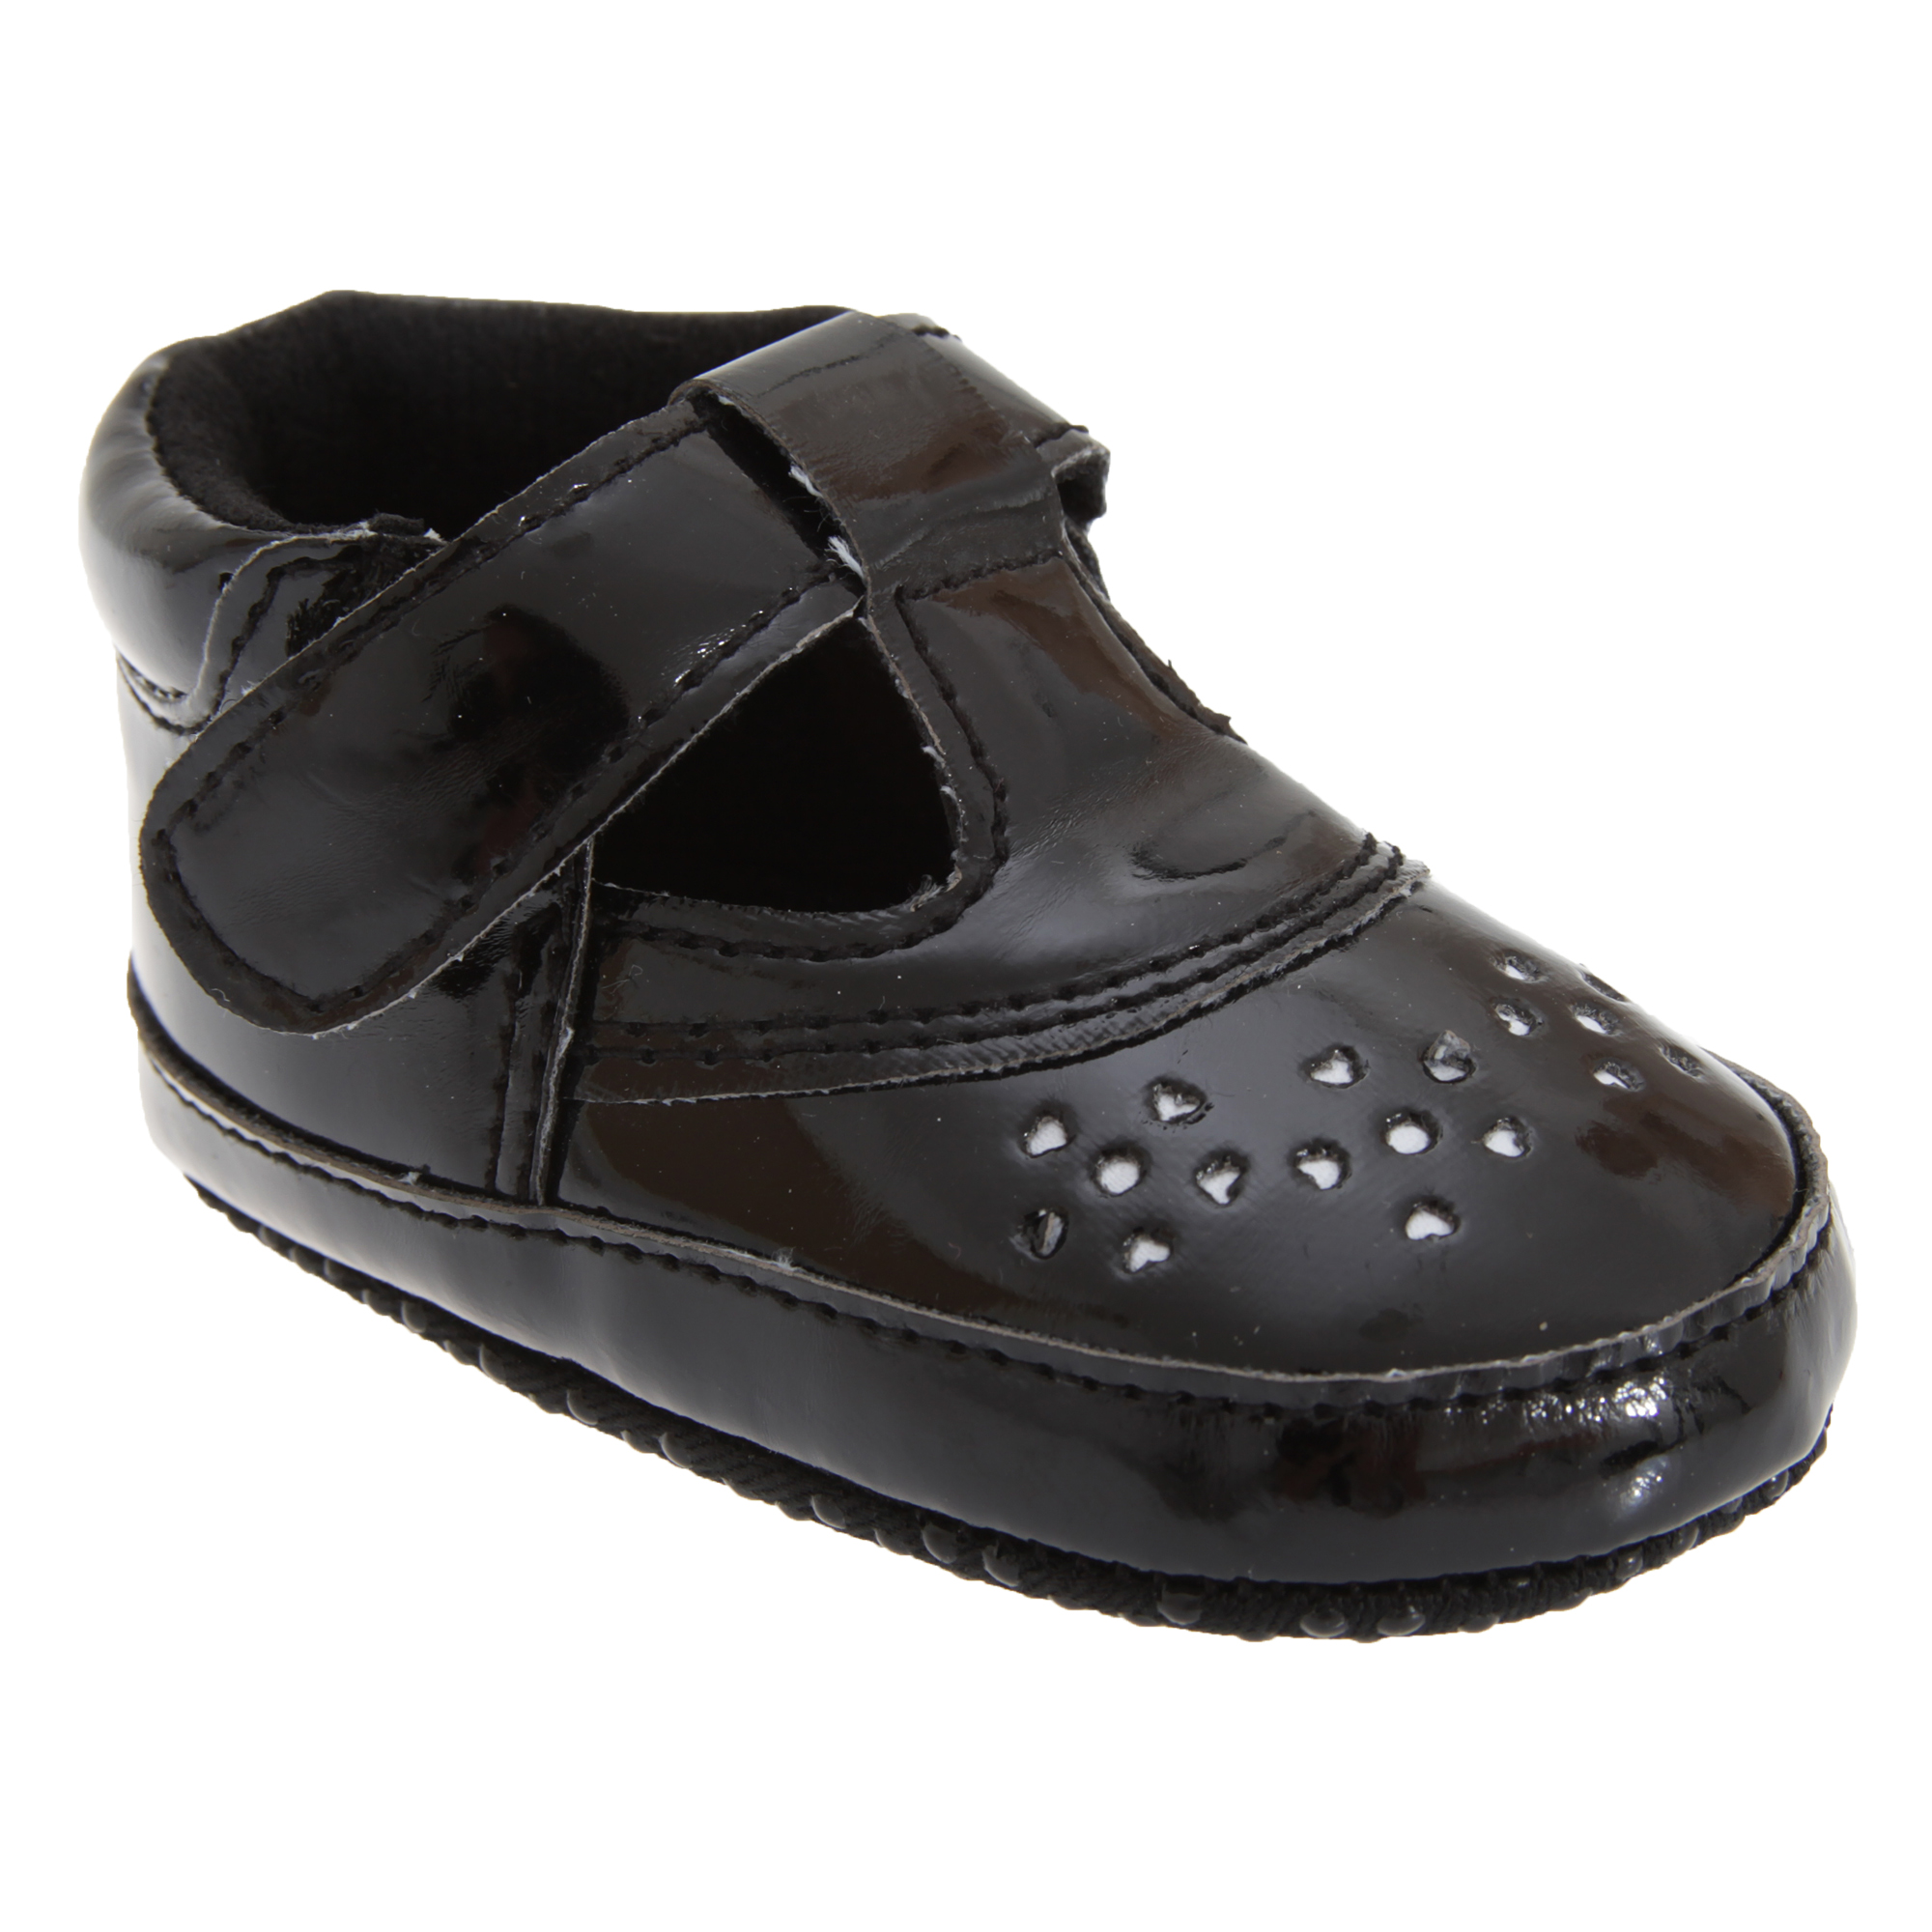 Baby Girl Shoes In Black With Strap (Size 1: 0-6 months) (As Shown)